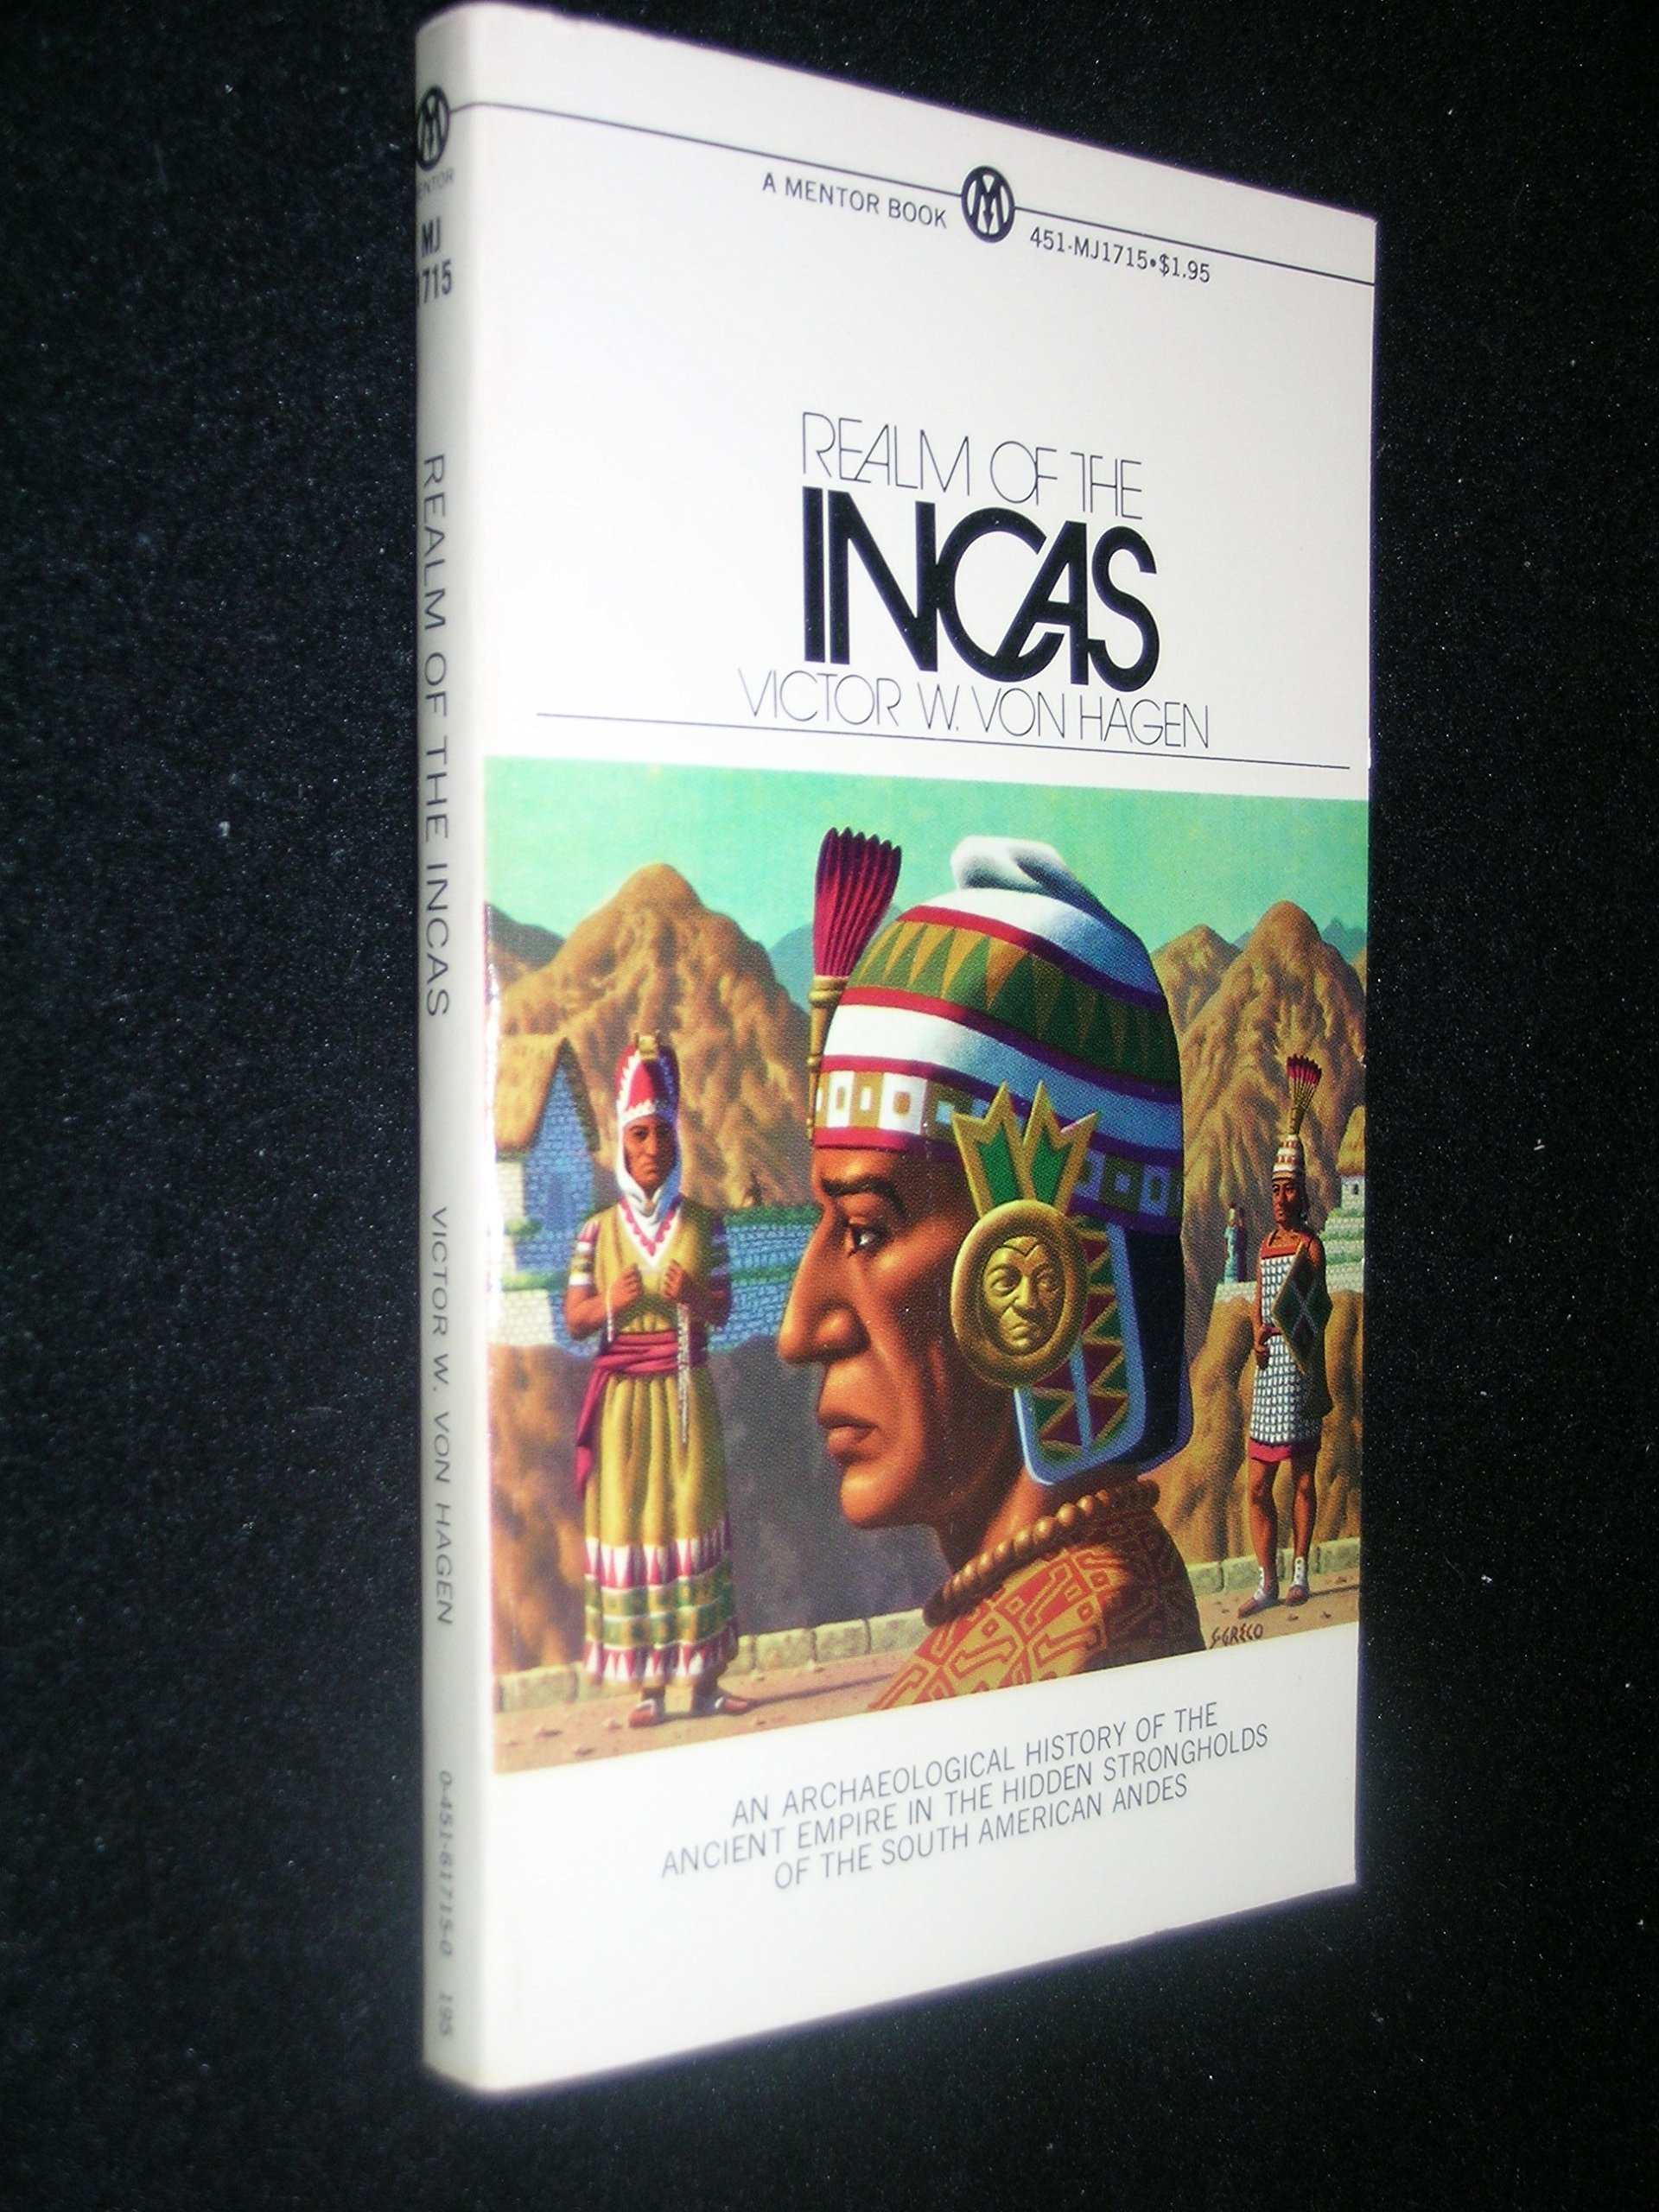 The Realm of the Incas ~ an archaeological history